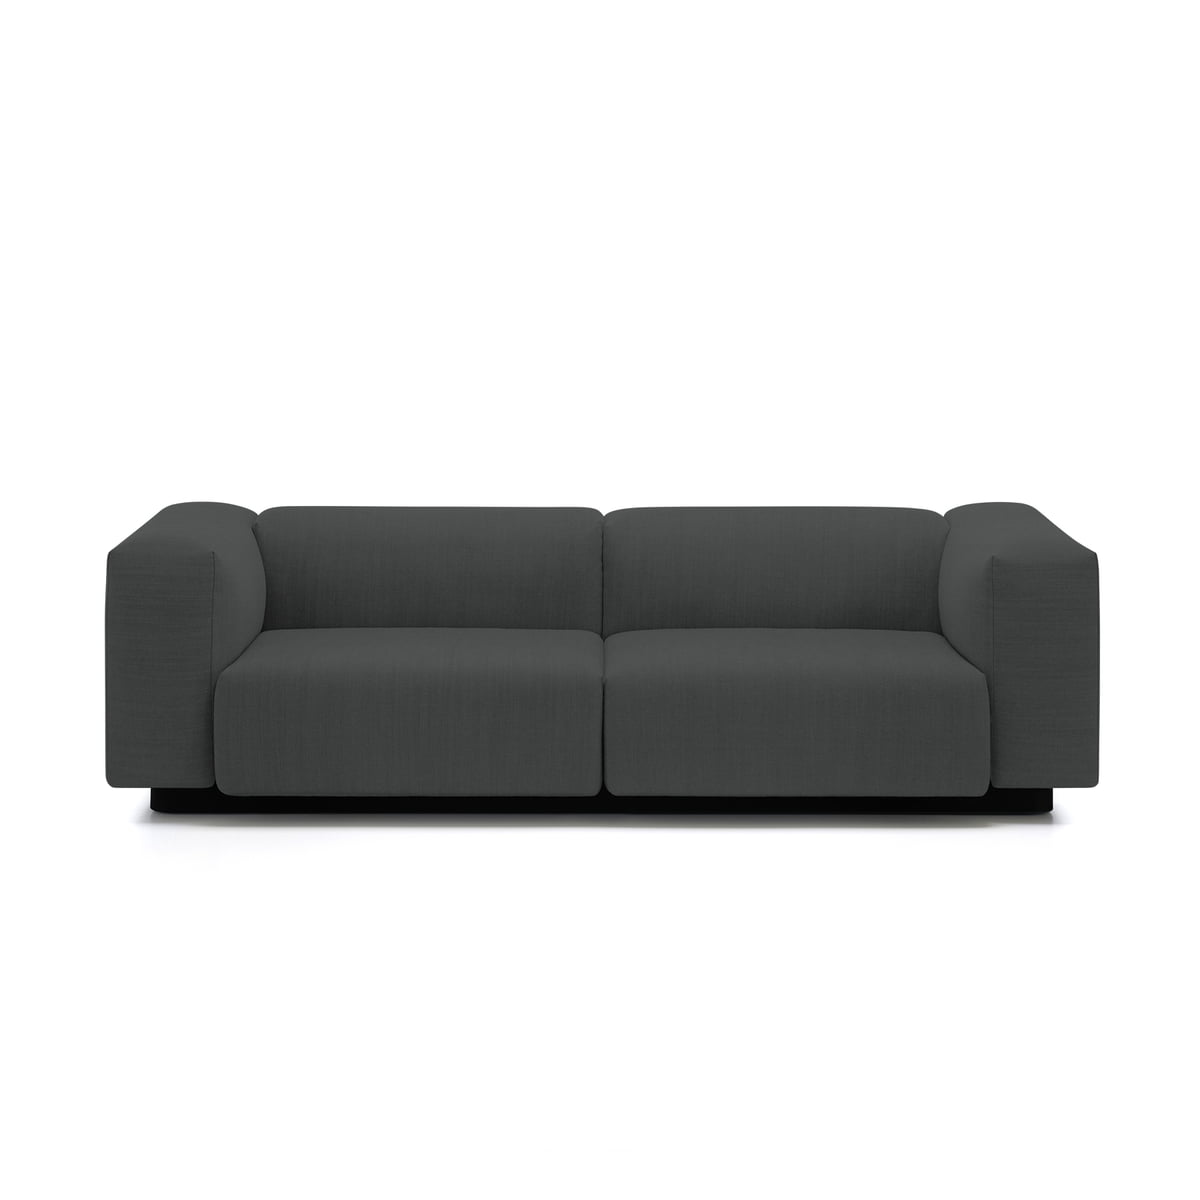 Soft modular 2 seater sofa from vitra in the connox shop for Sofa 2 sitzer